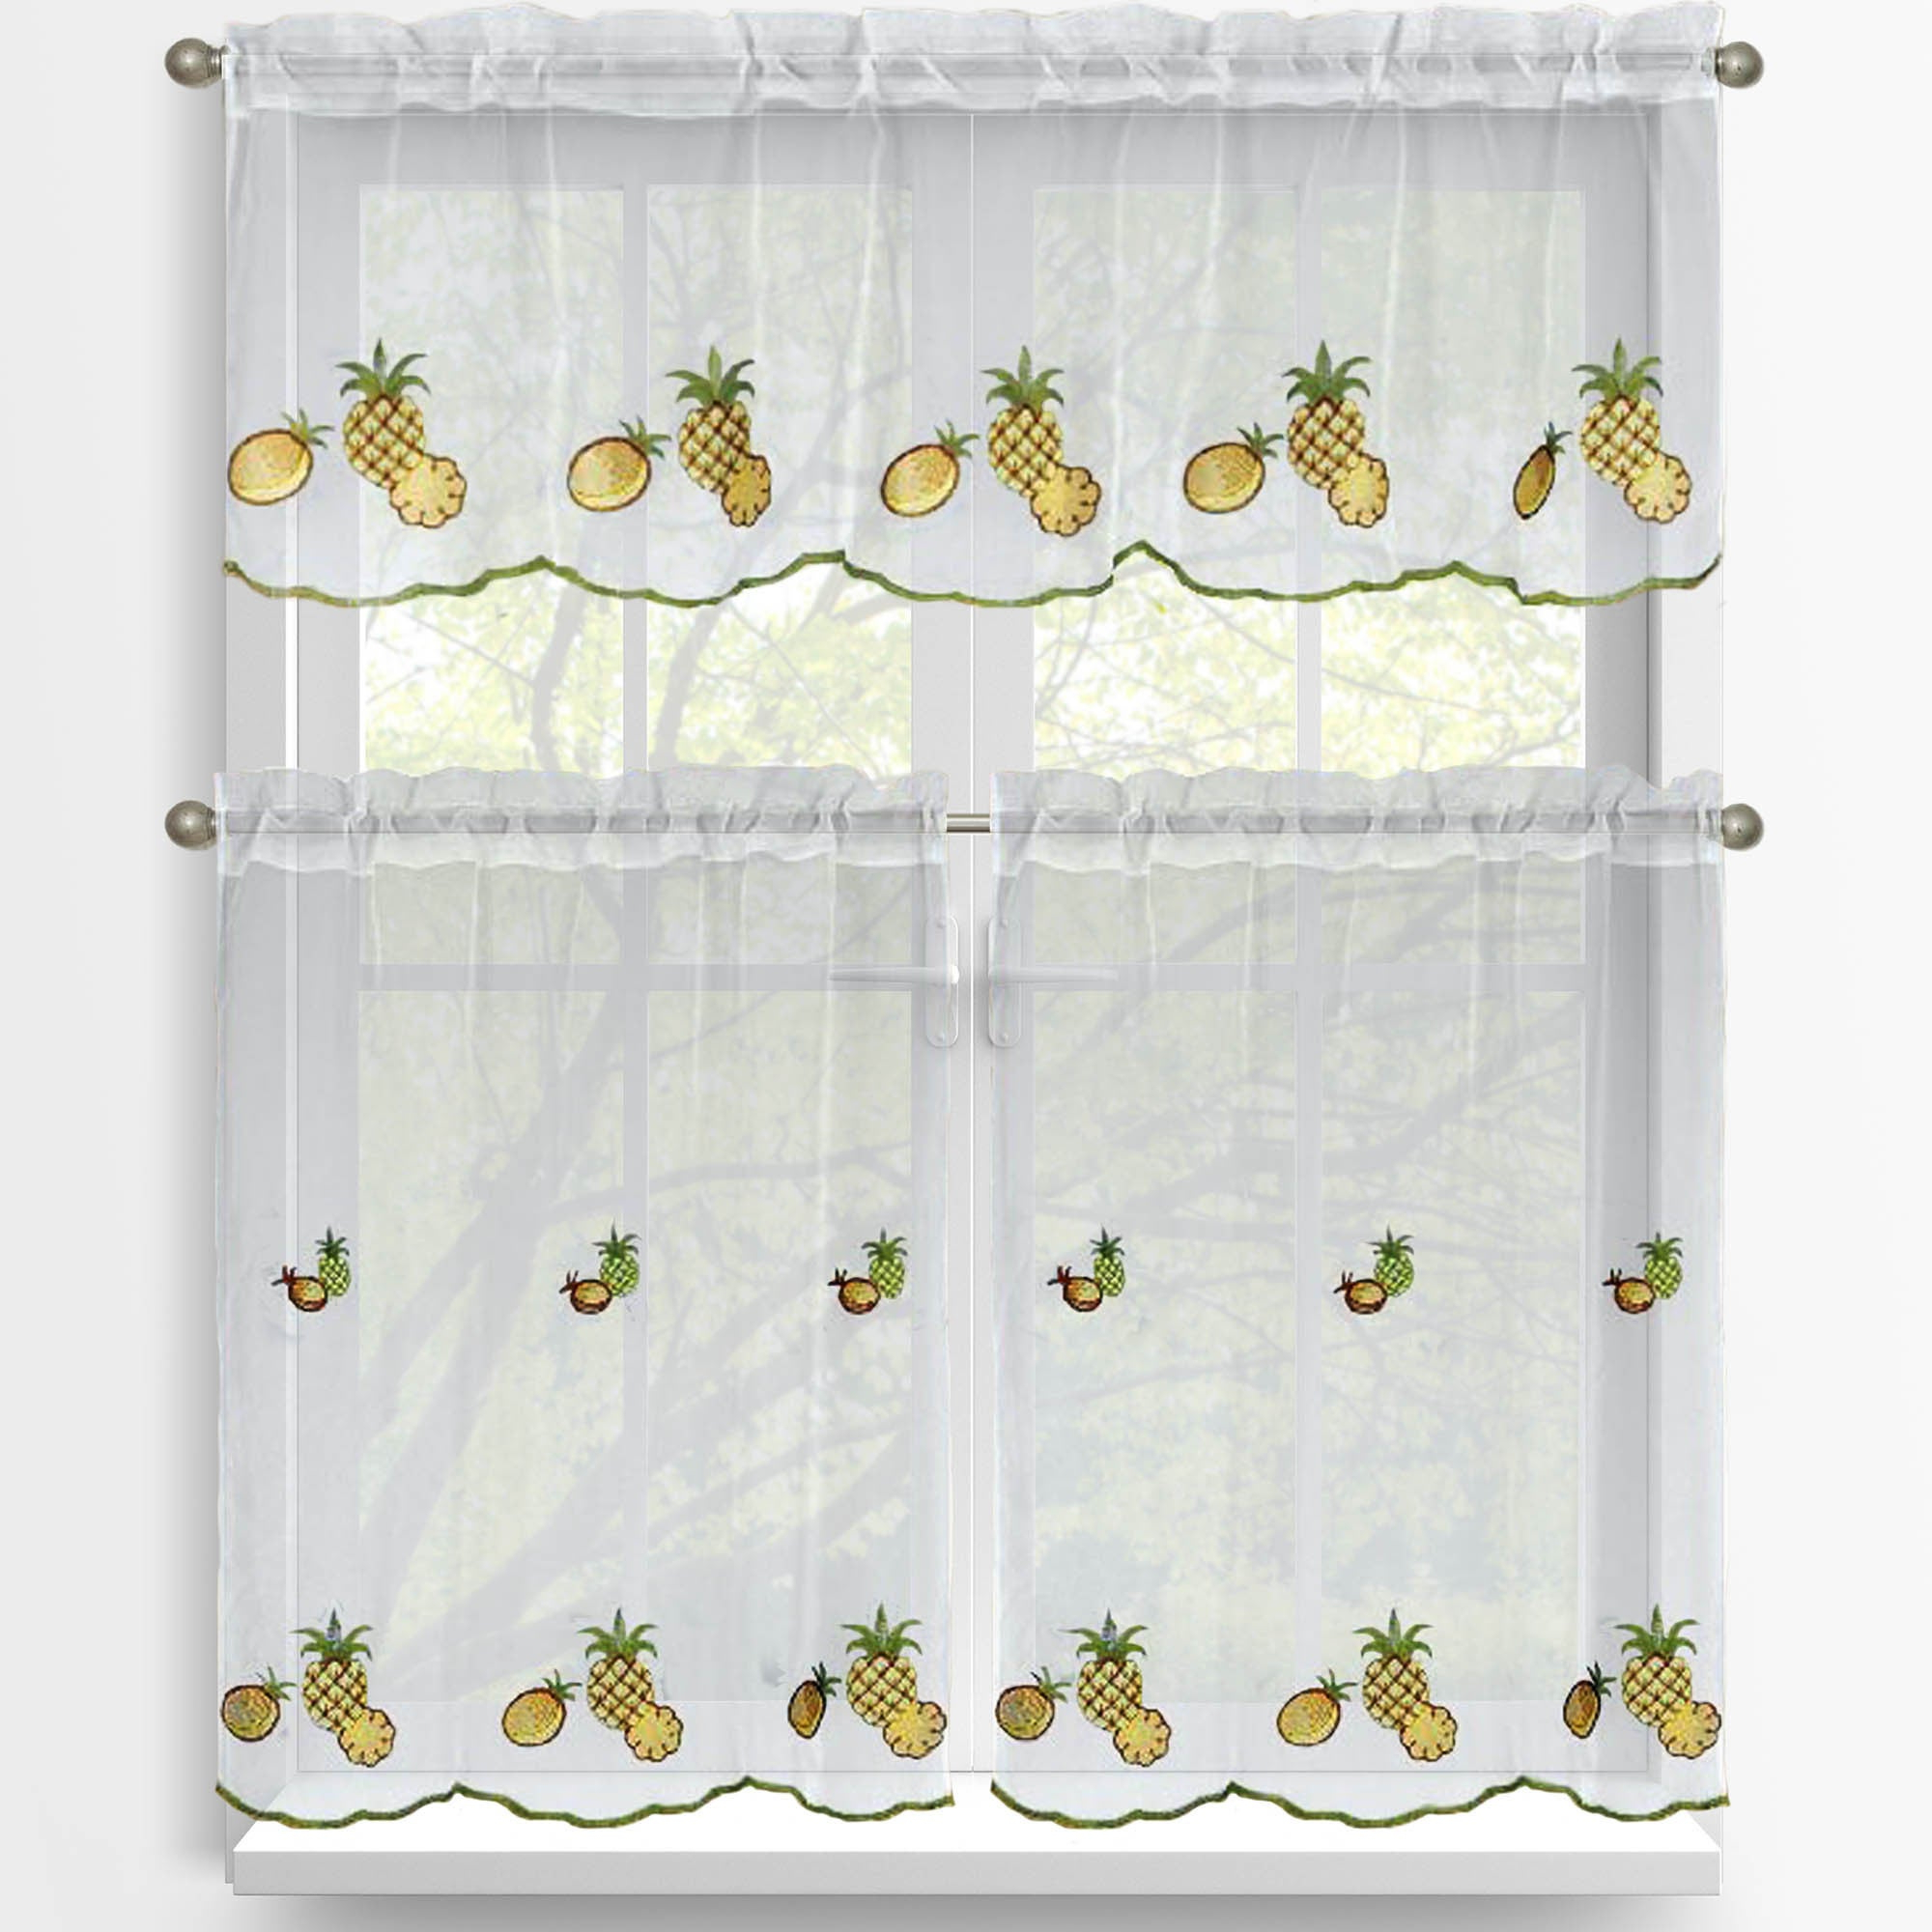 Famous Window Elements Embroidered 3 Piece Kitchen Tier And Valance Set With Regard To Coffee Drinks Embroidered Window Valances And Tiers (View 15 of 20)